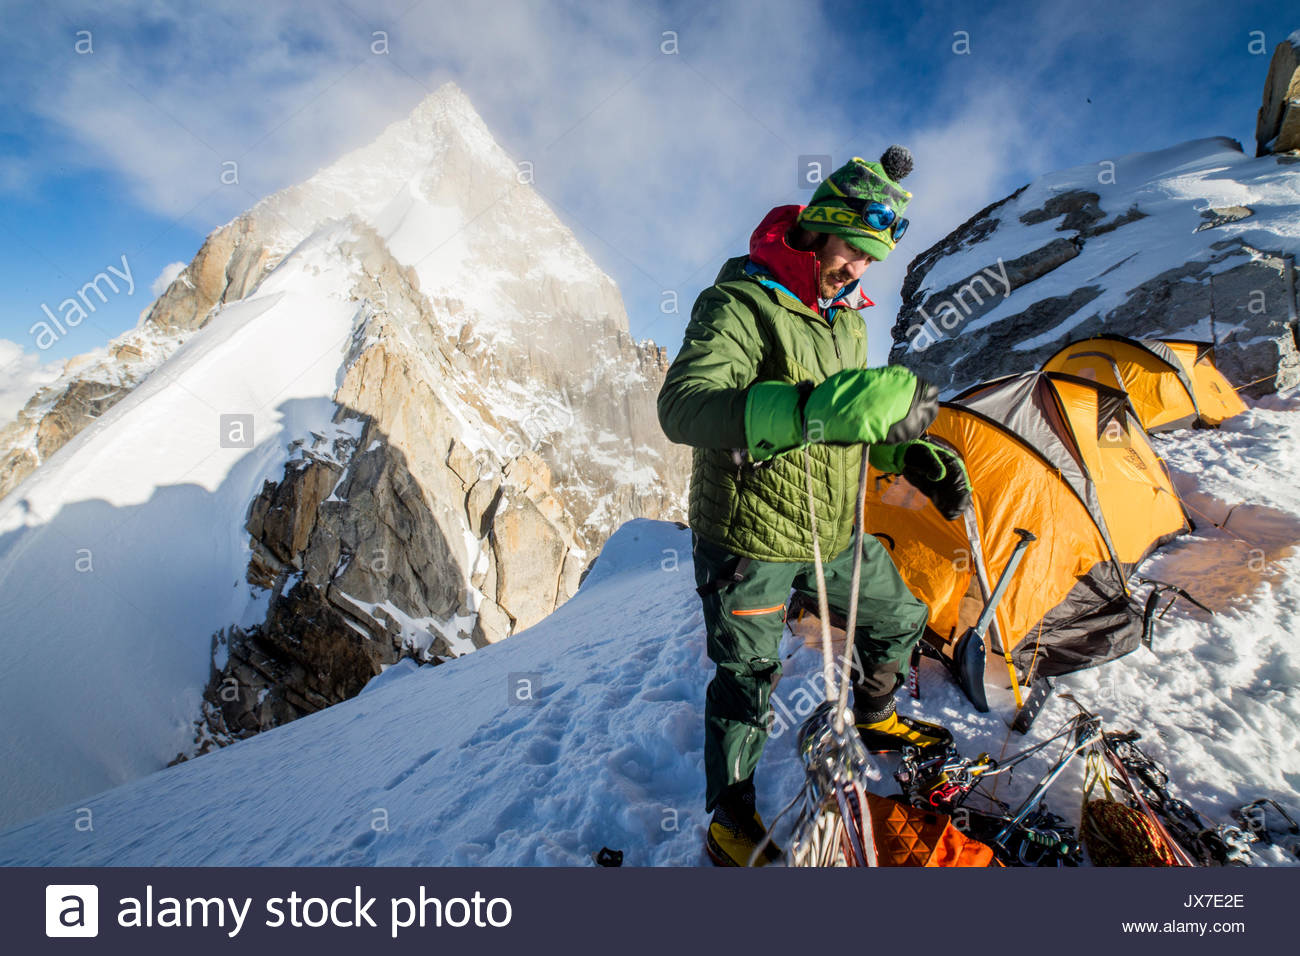 An expedition member double checks his ropes and gear. Stock Photo